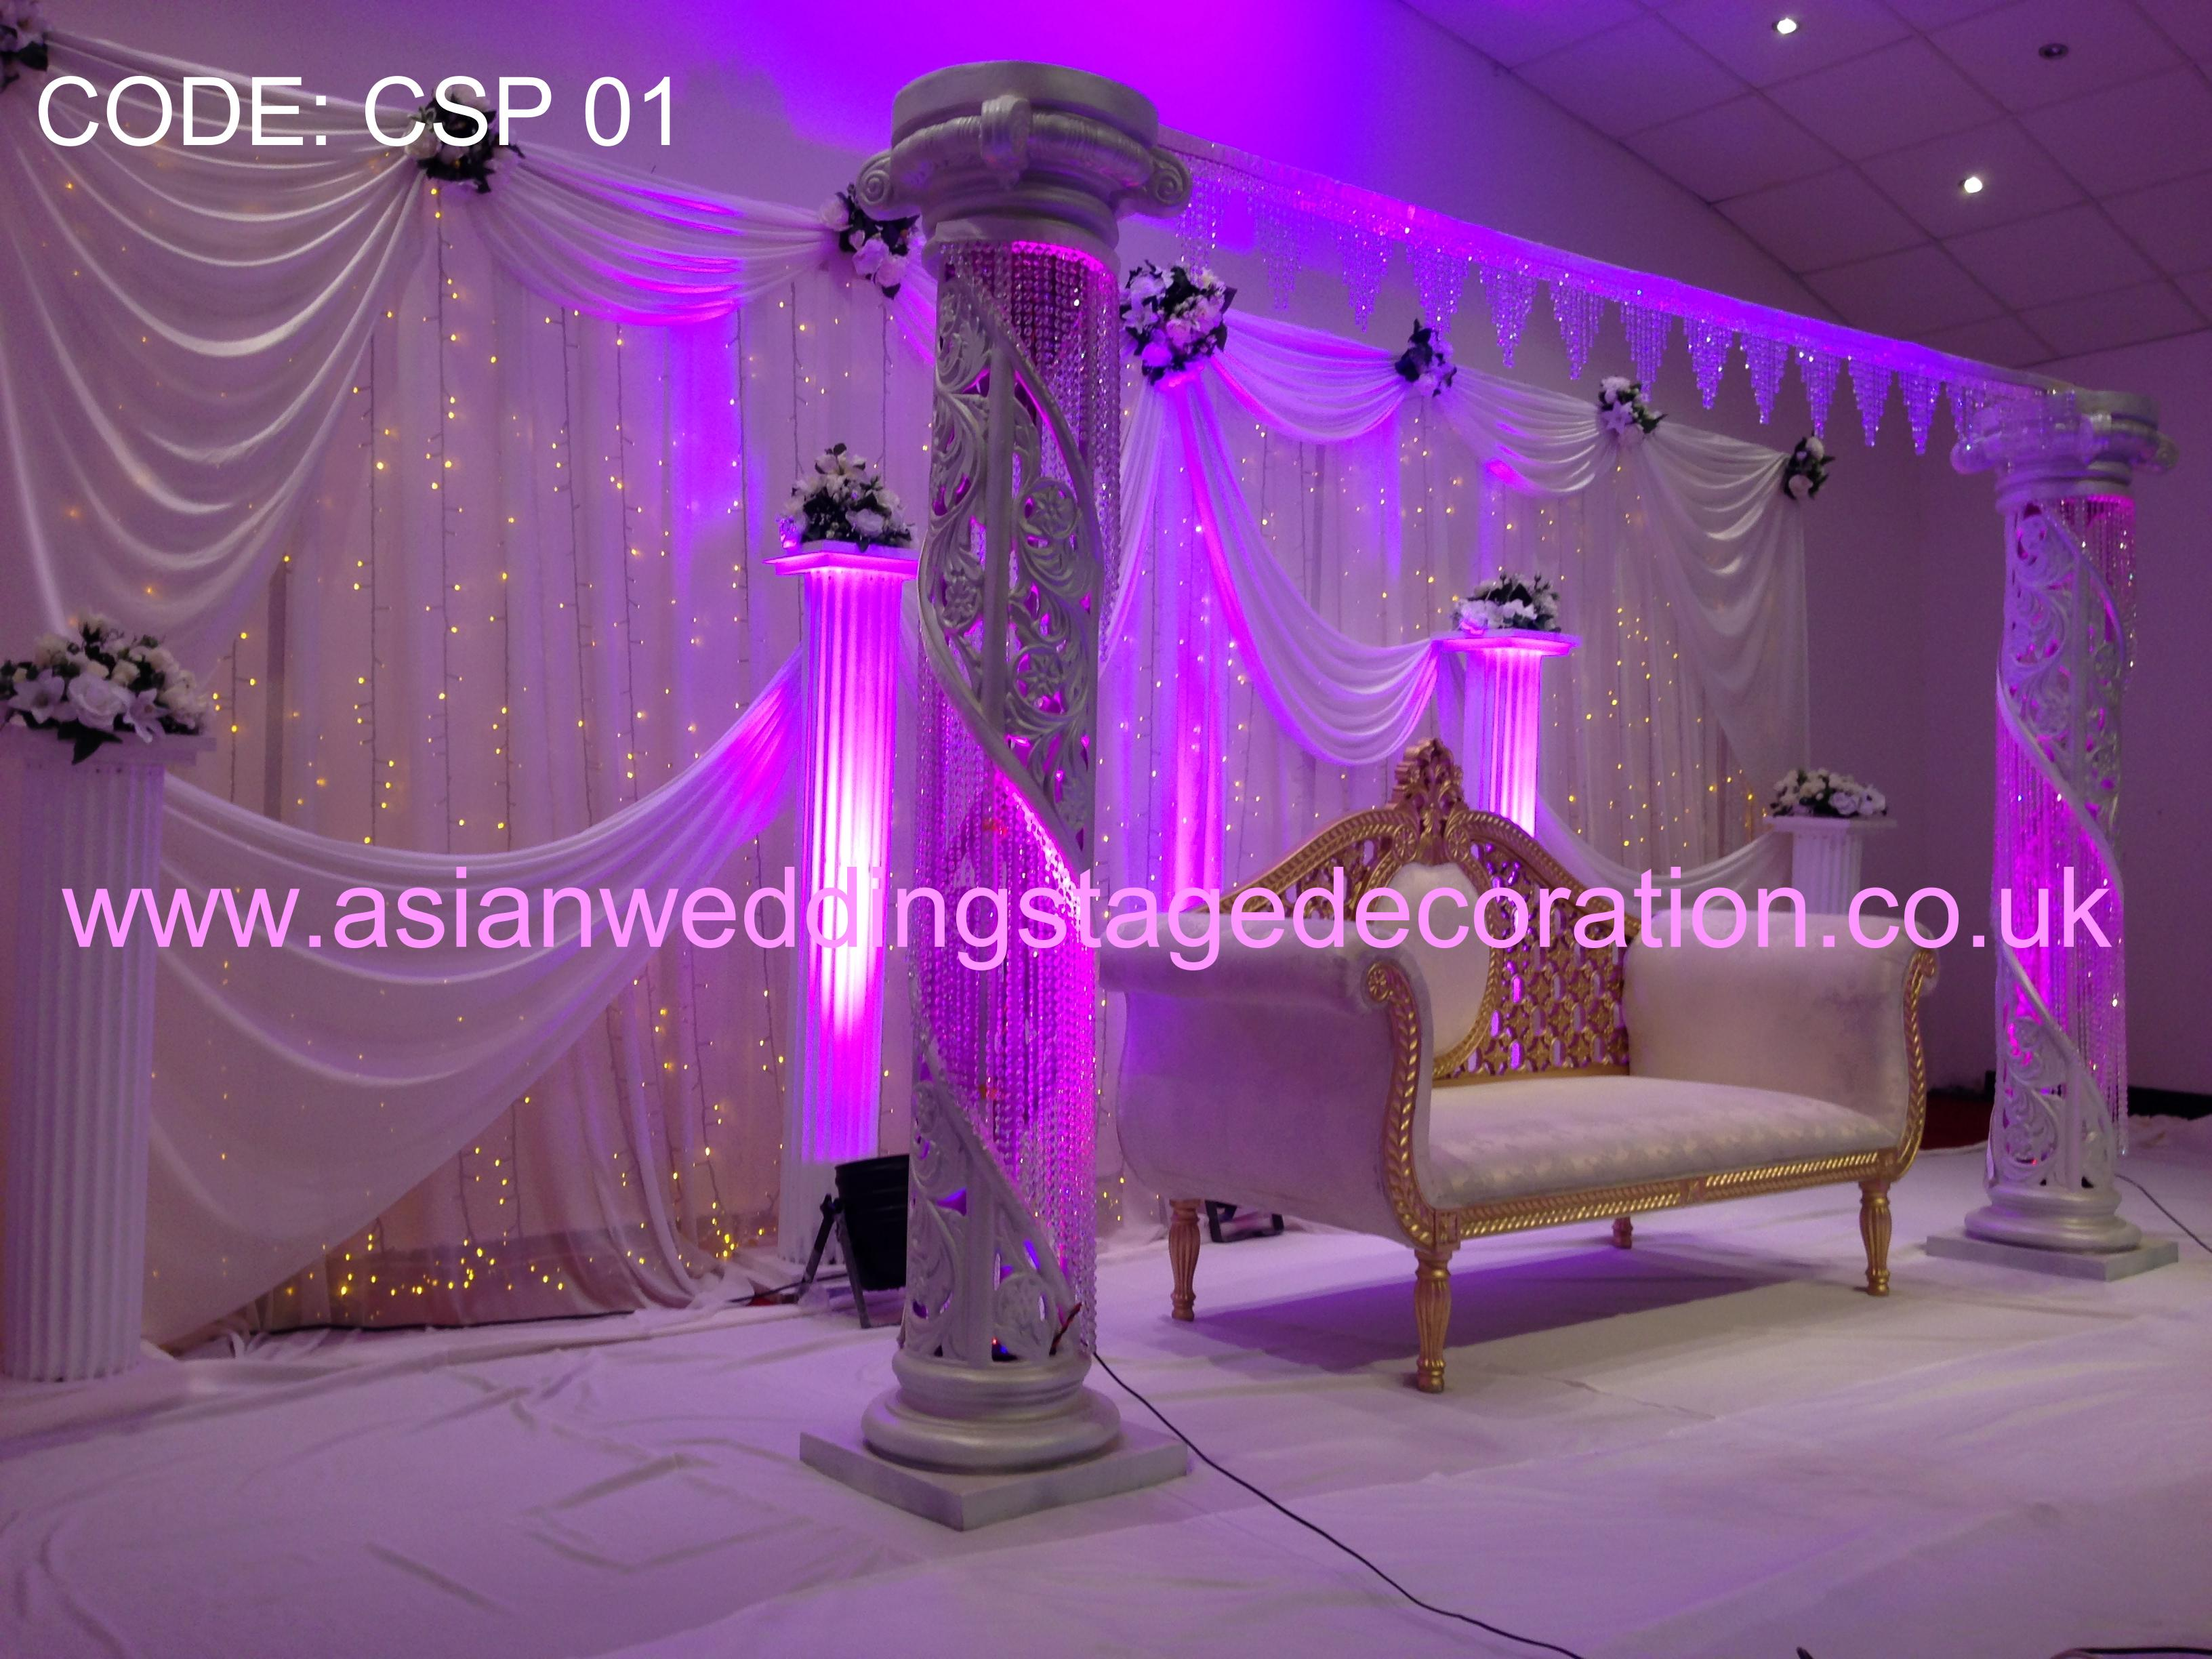 Asian wedding stages hire london birmingham and uks best wedding asian wedding stages hire london birmingham and uks best wedding services junglespirit Image collections